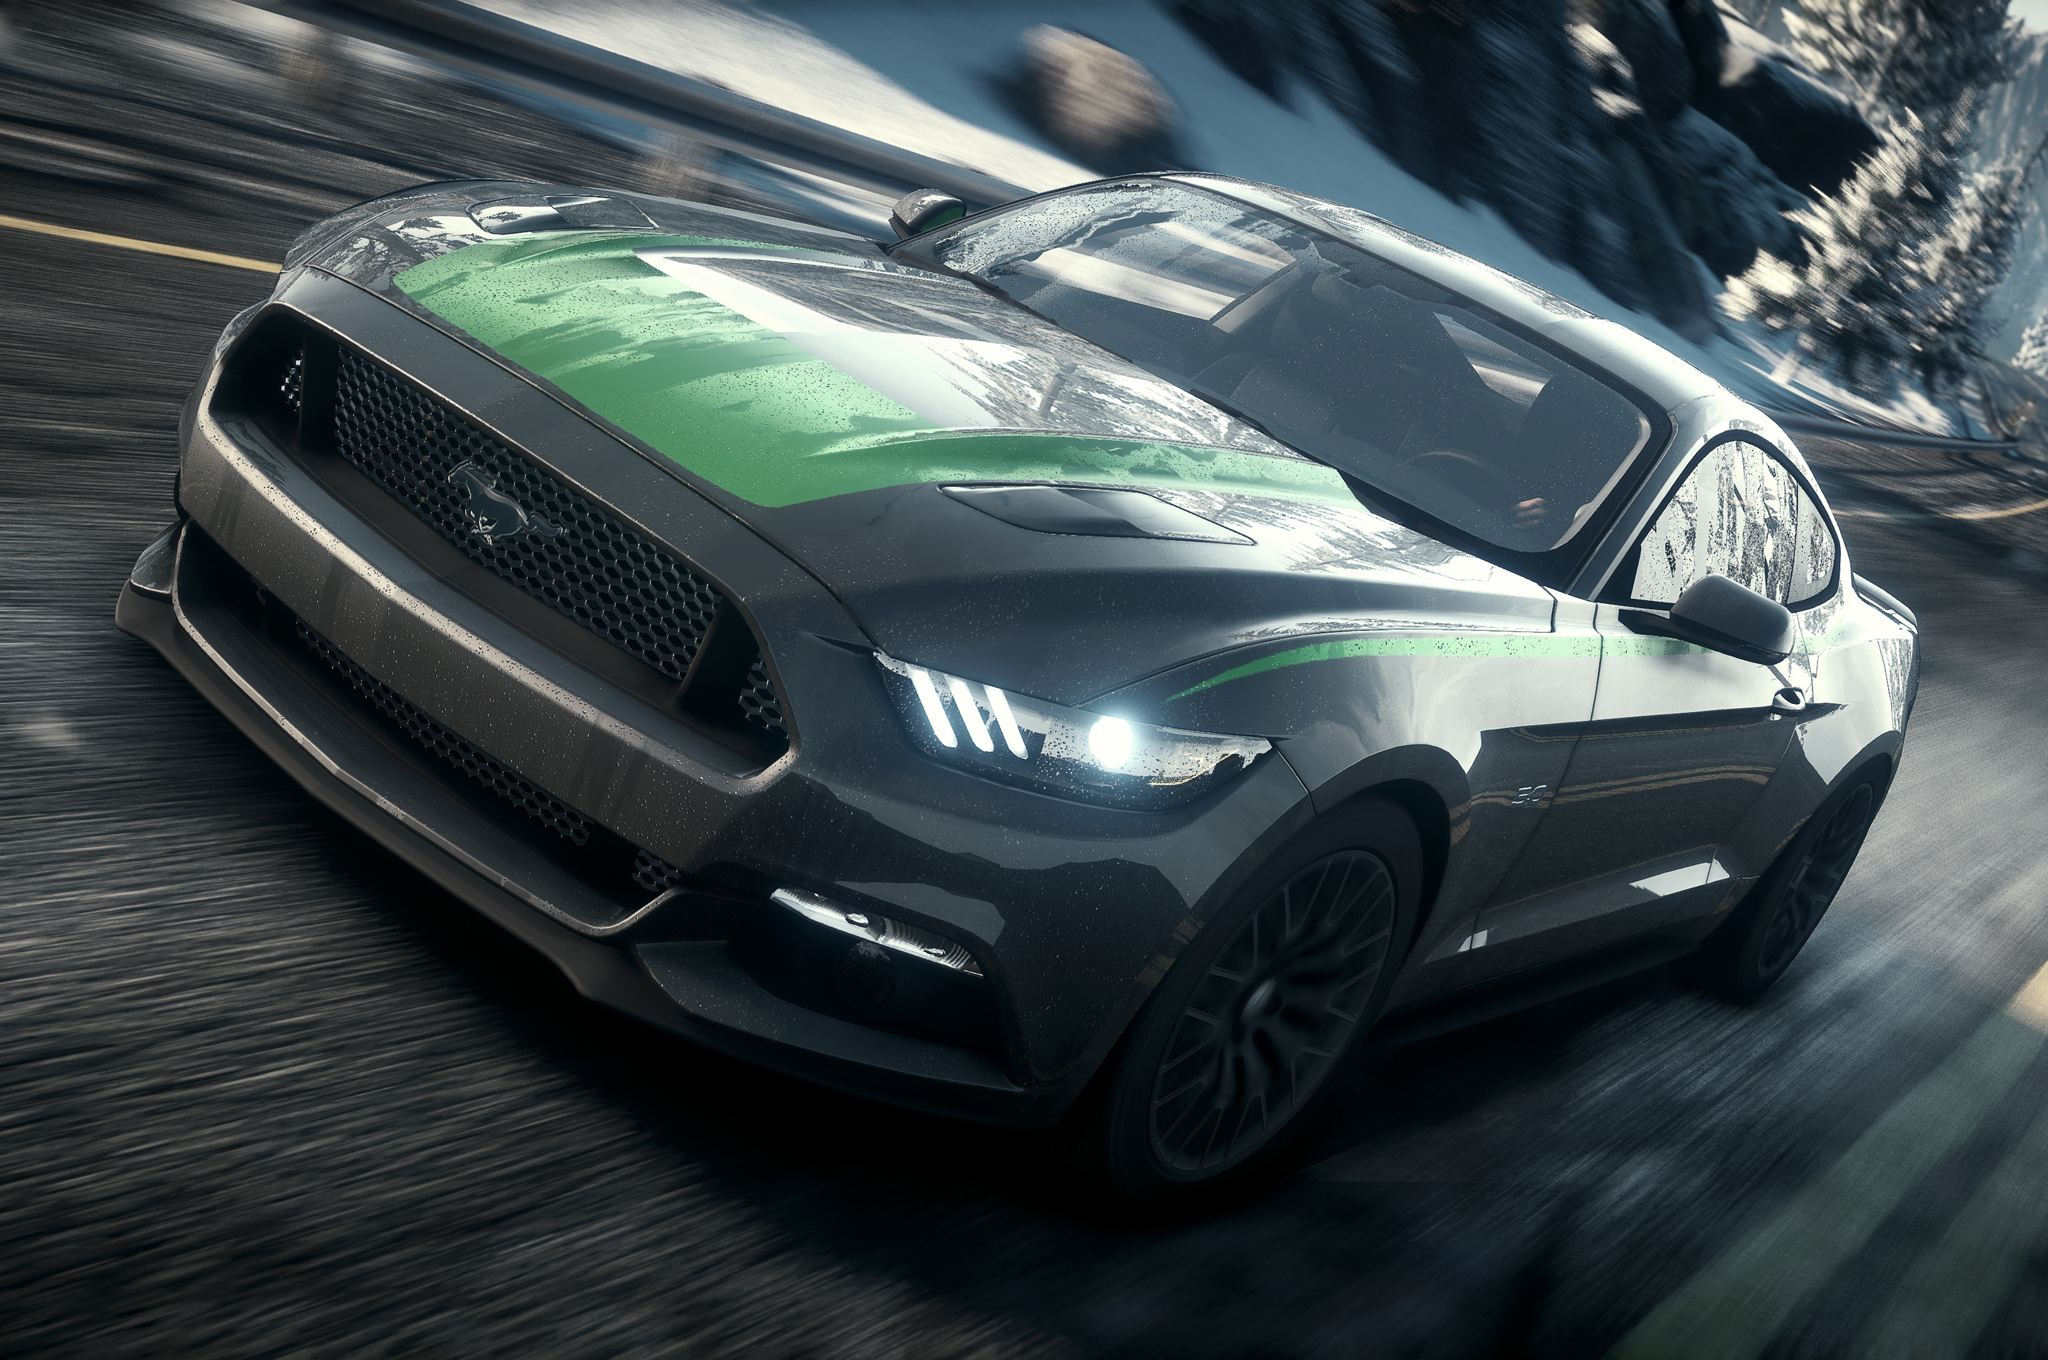 2015 Mustang Now Available As Free Download In Need For Speed